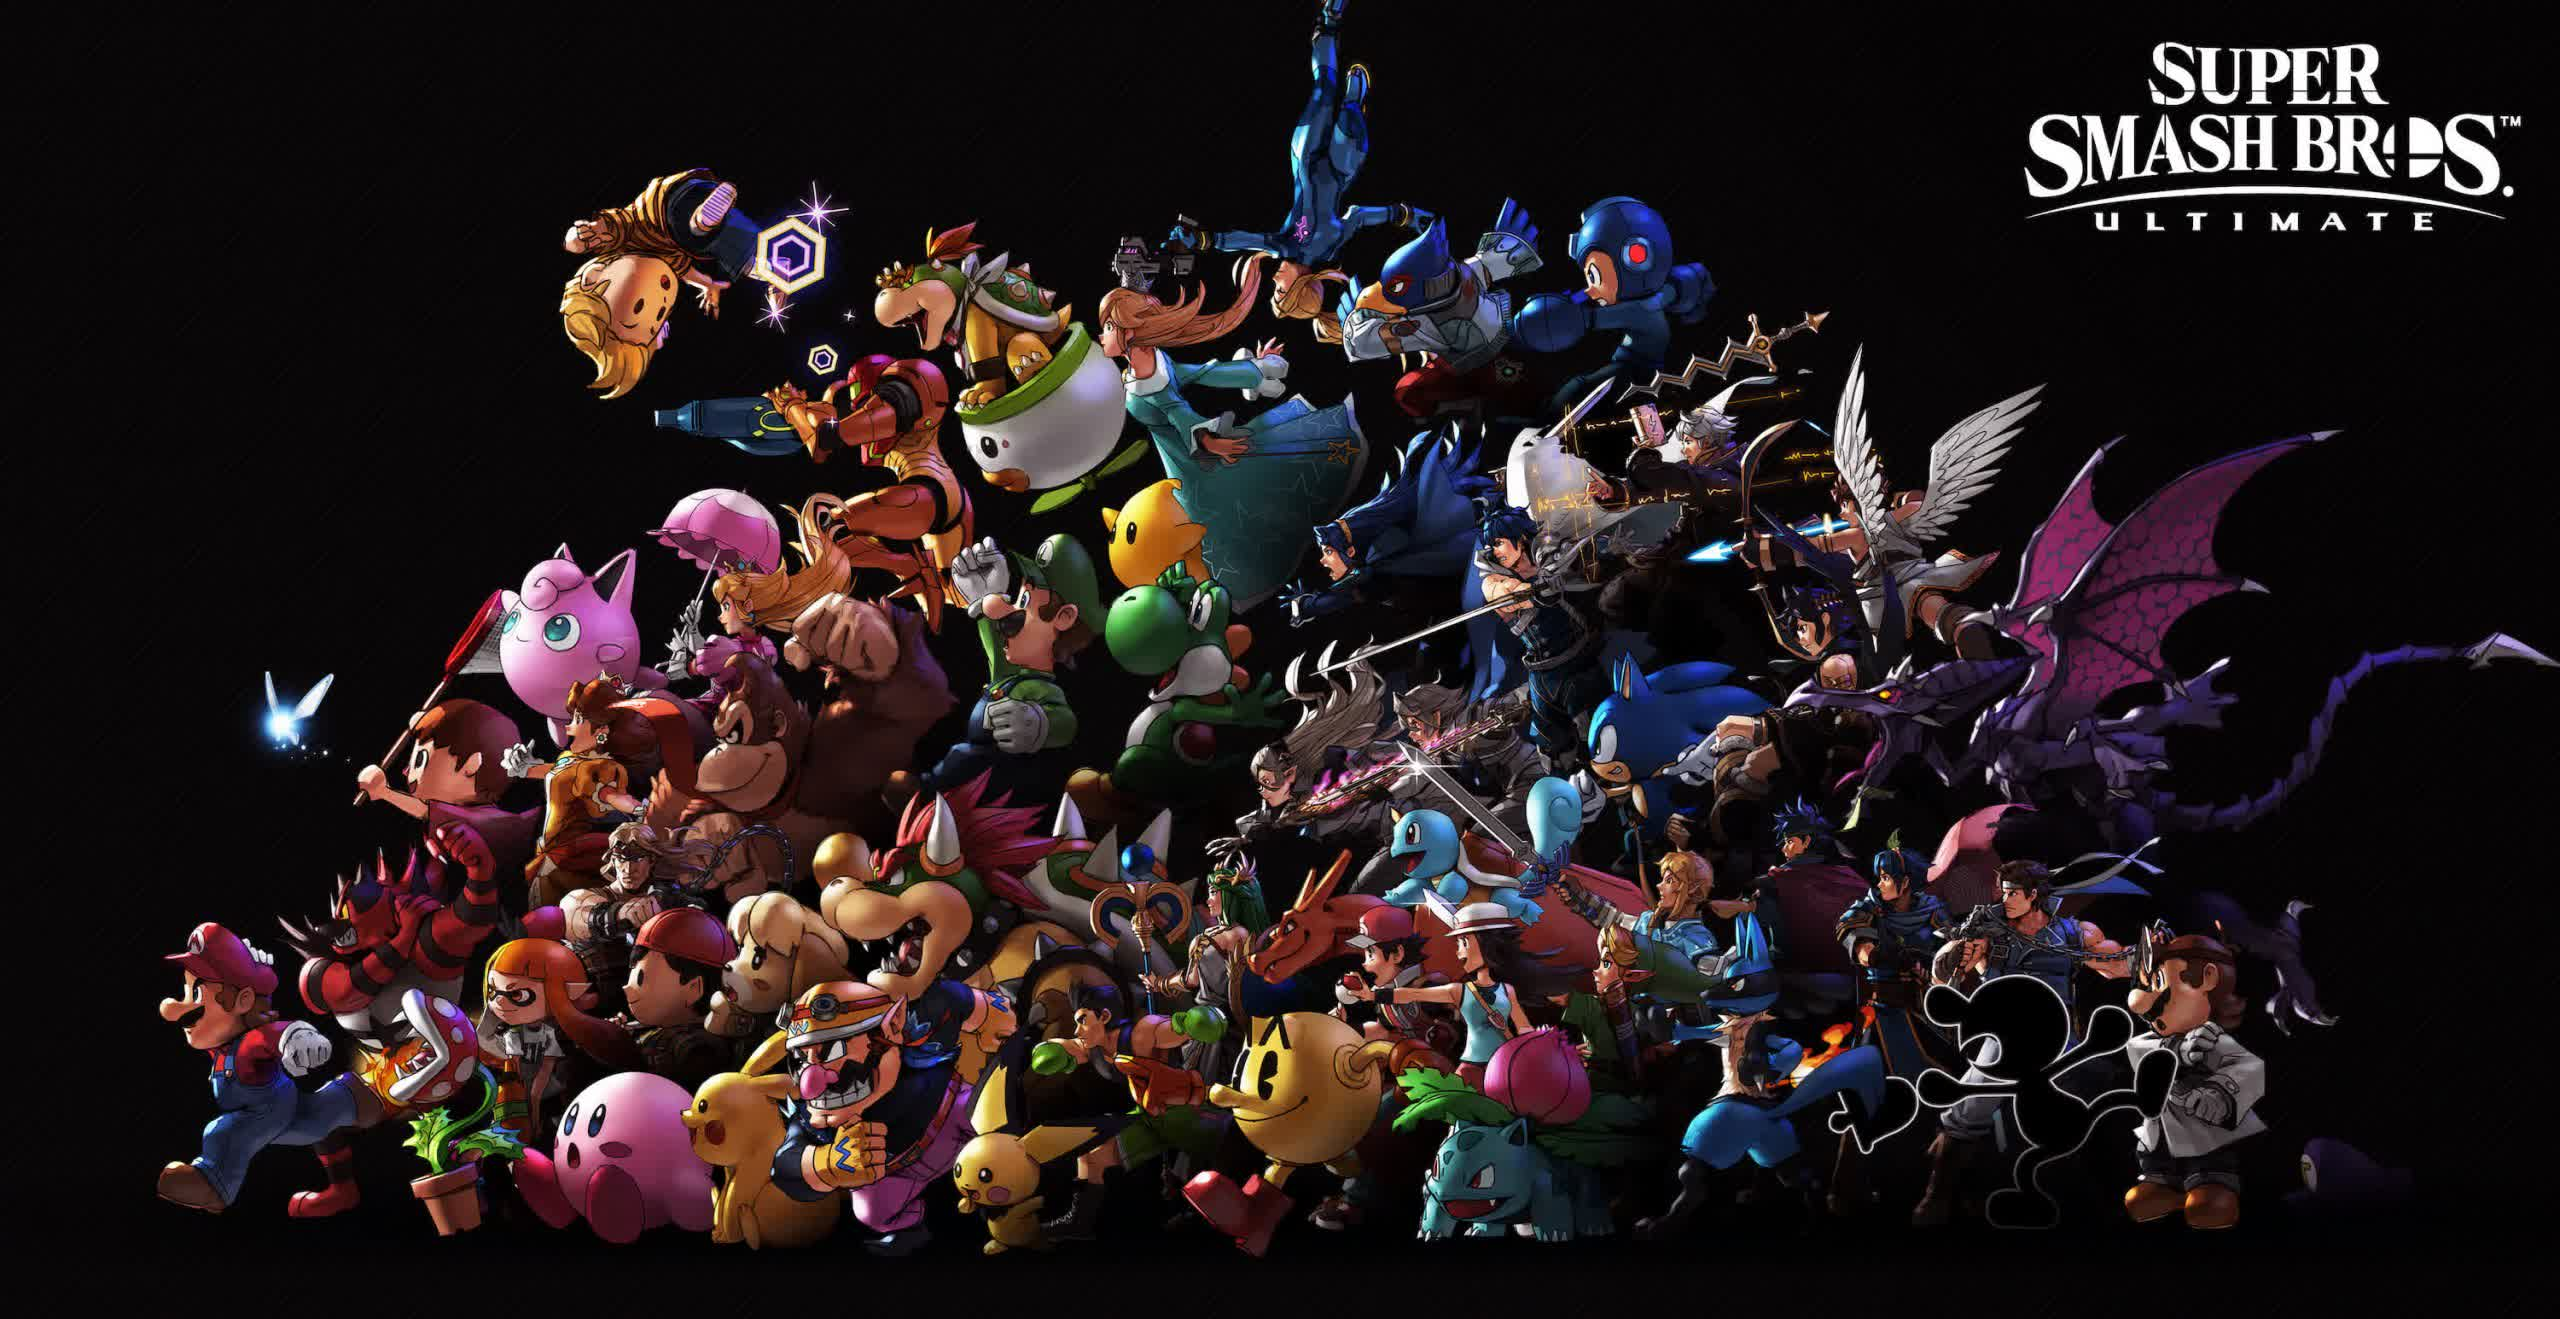 Nintendo shuts down long-scheduled Super Smash Bros Ultimate tournament with less that two-week notice